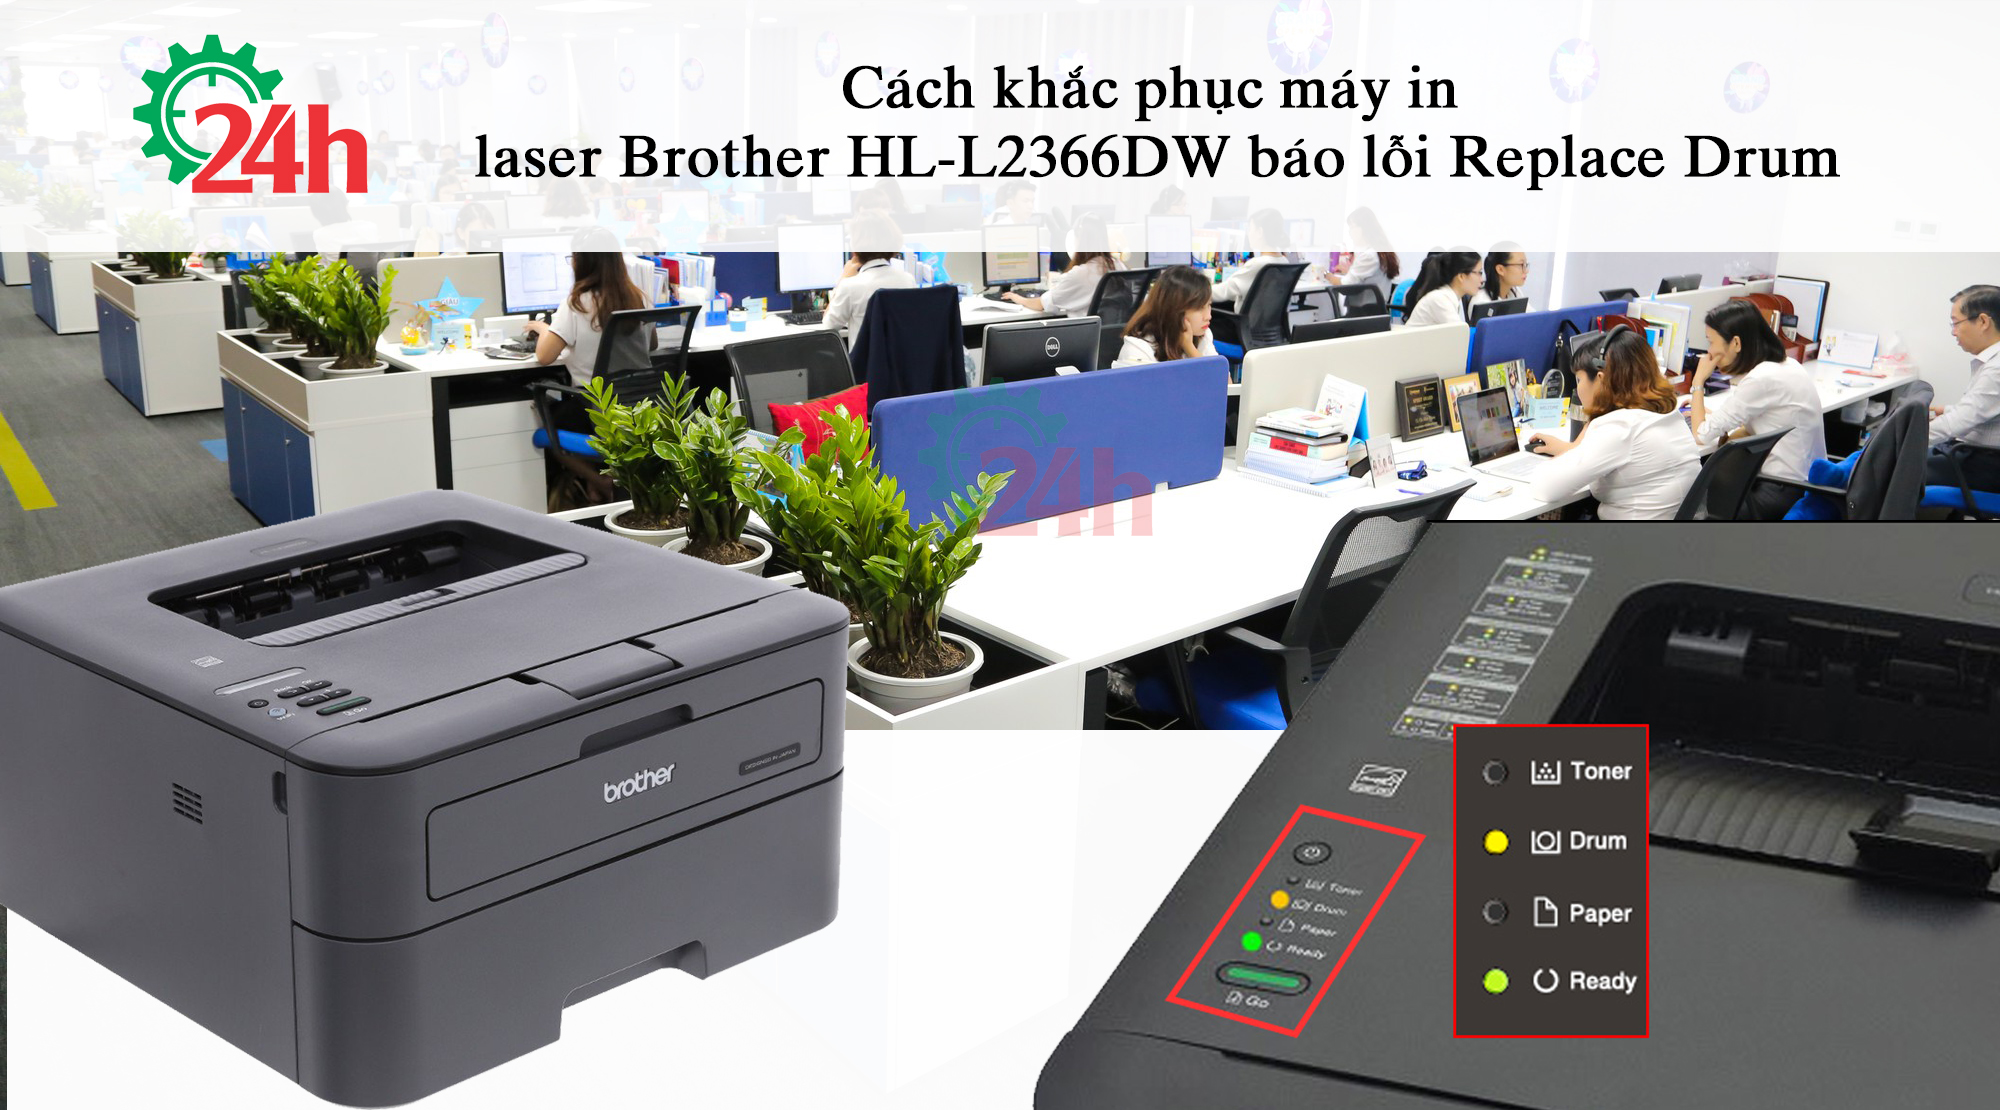 may-in-laser-brother-hl-l2366dw-bao-loi-replace-drum